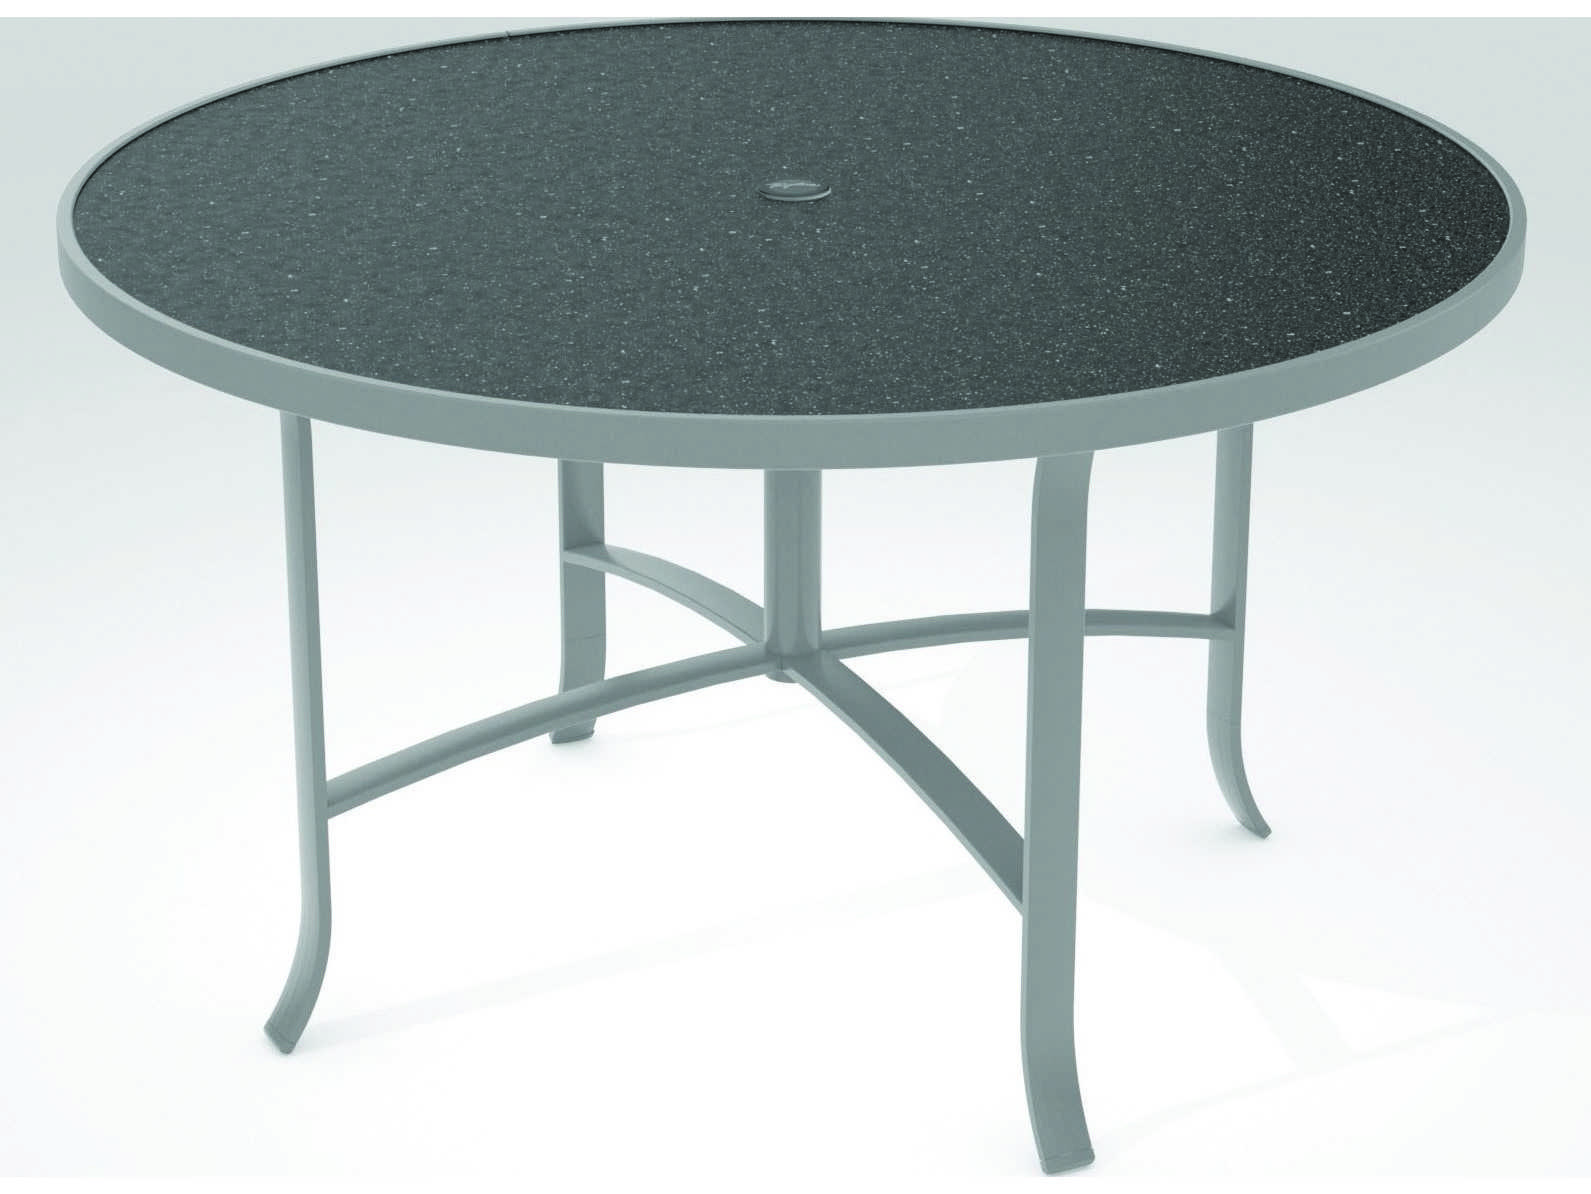 Tropitone Hpl Raduno Aluminum 48 Round Dining Umbrella Table 4248hu